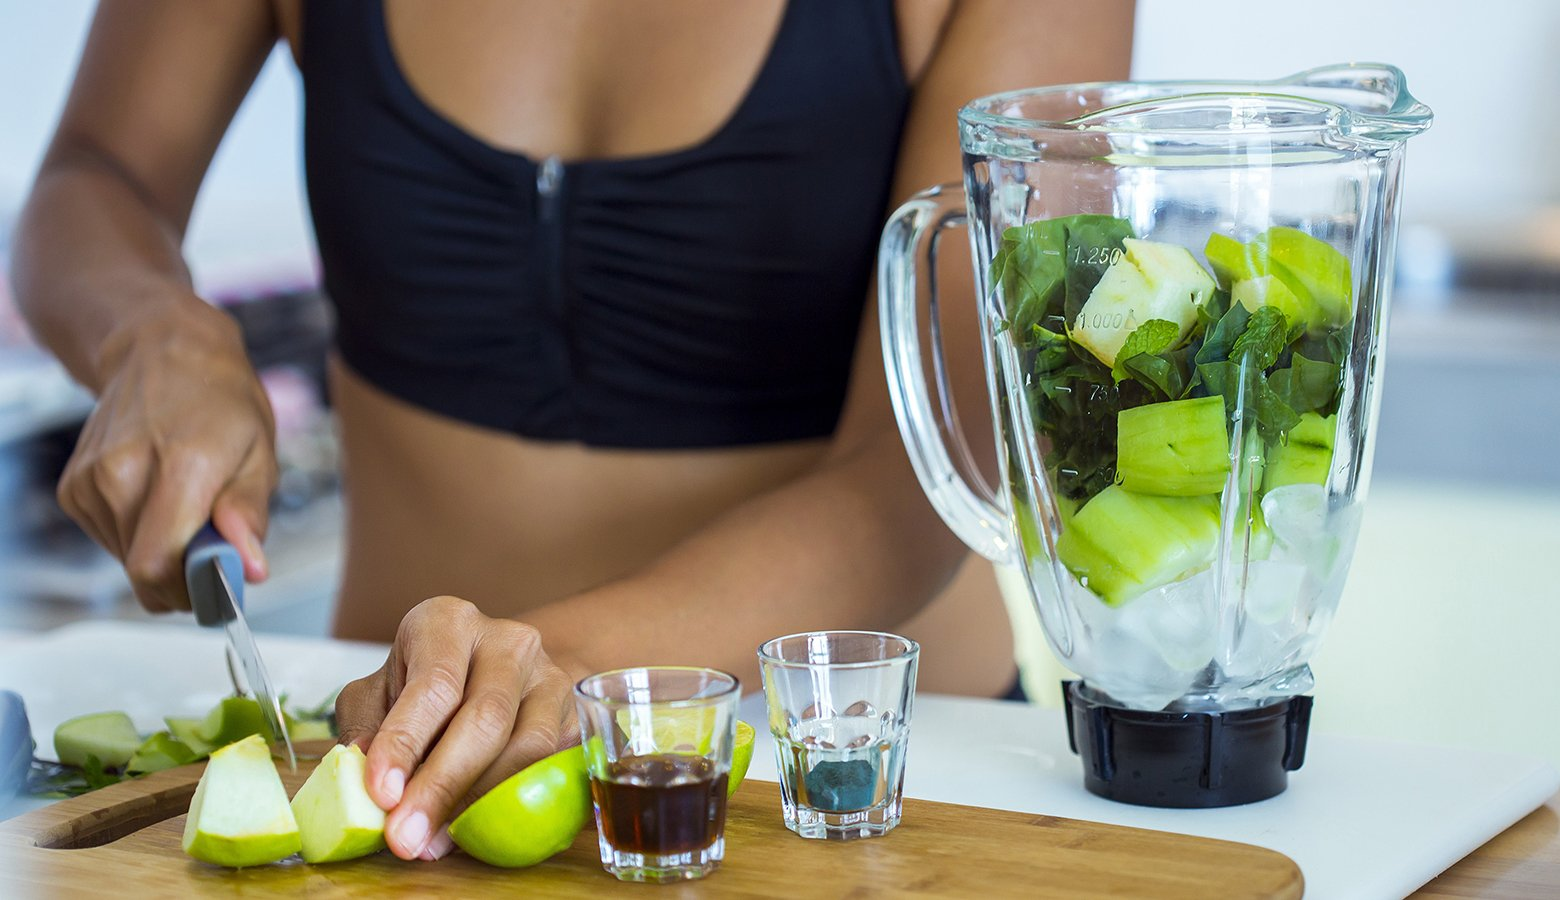 Liver Detox: 6 Foods To Boost and Cleanse Your Liver